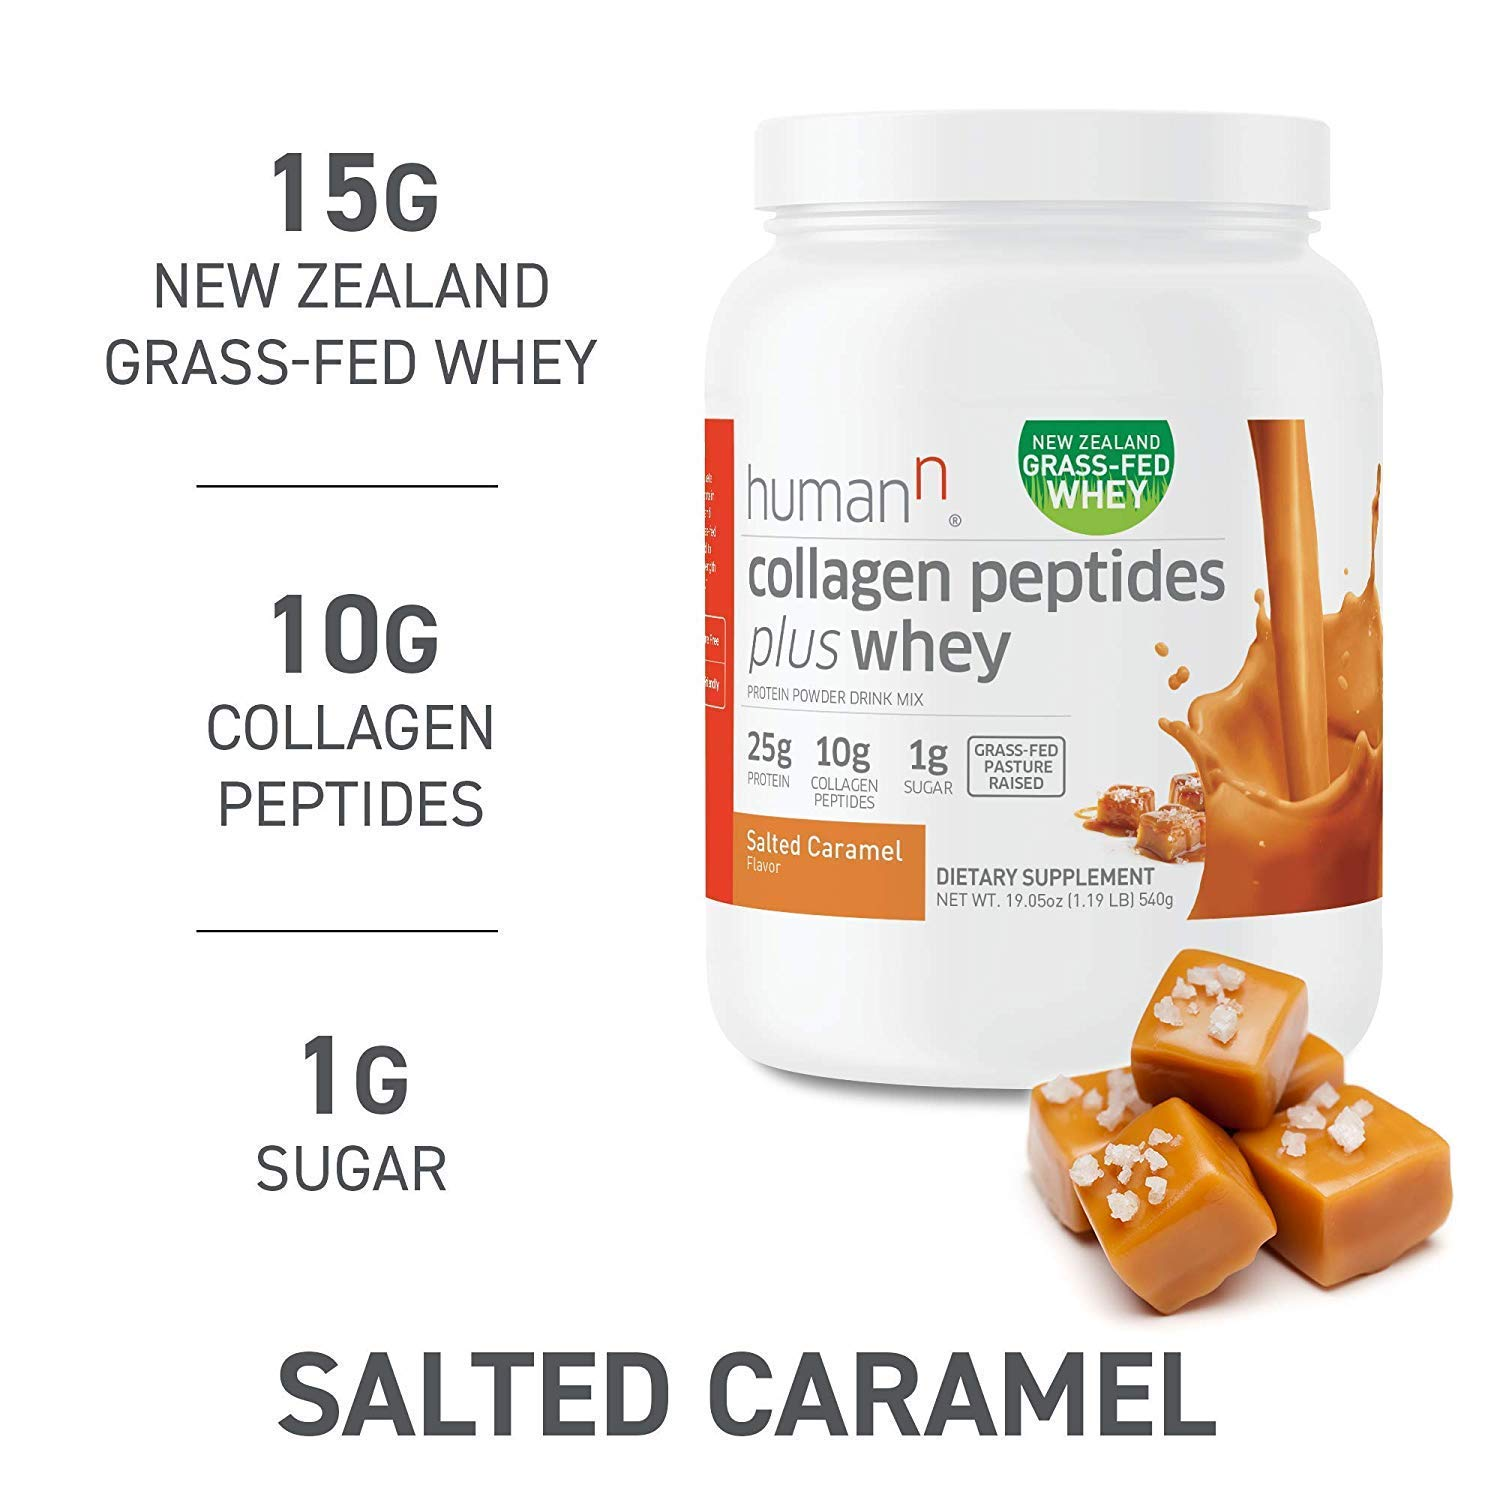 HumanN Collagen Peptides Plus Whey Low-Carb, Grass-Fed, Pasture-Raised, 10 Grams of Collagen Peptides Plus 15 Grams of Whey Protein, Gluten Free, Soy Free, Non-GMO, Type I and III Salted Caramel